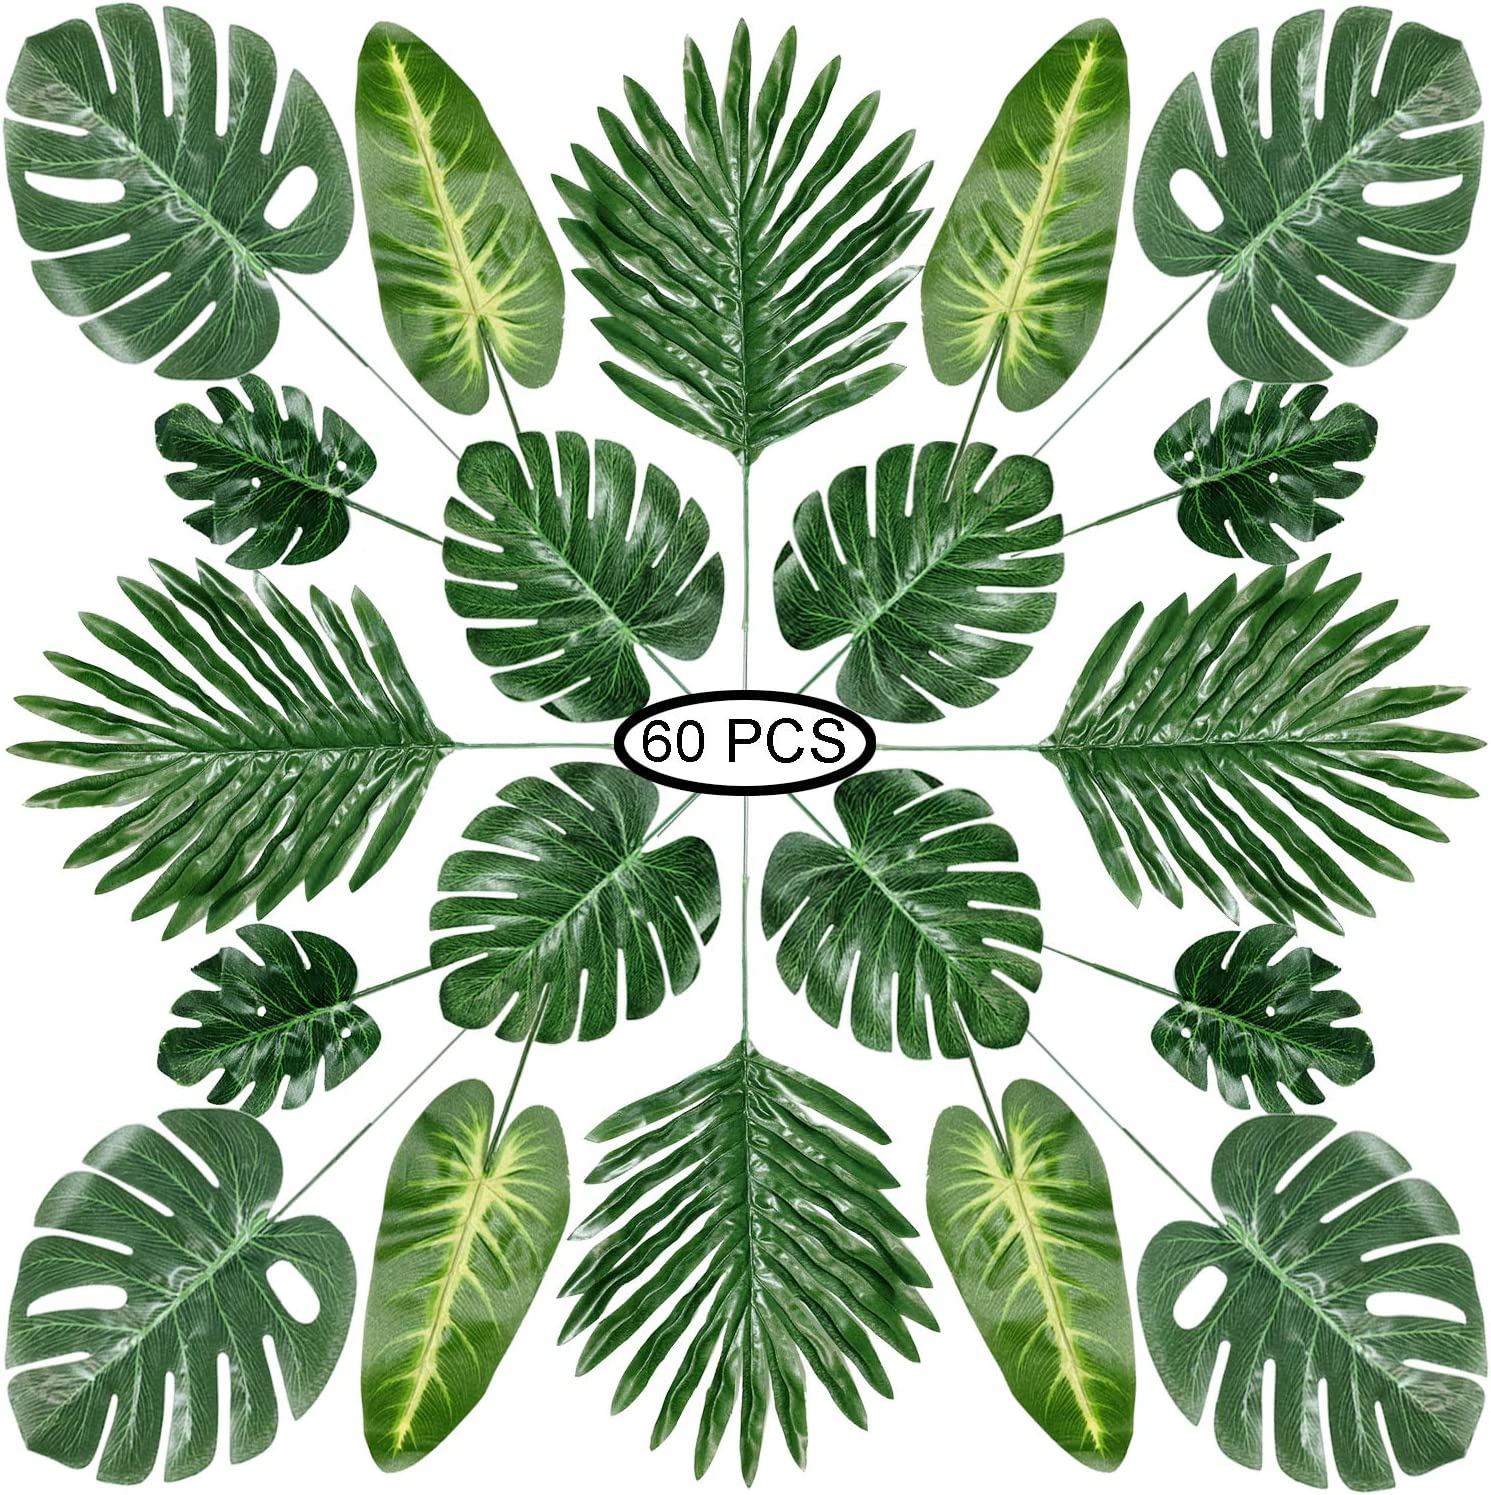 Recosis 60 Pieces 5 Kinds Artificial Palm Leaves with Faux Stem, Tropical Party Decorations Jungle Monstera Leaves Safari Leaves for Hawaiian Luau Party Jungle Beach Table Leave Decorations